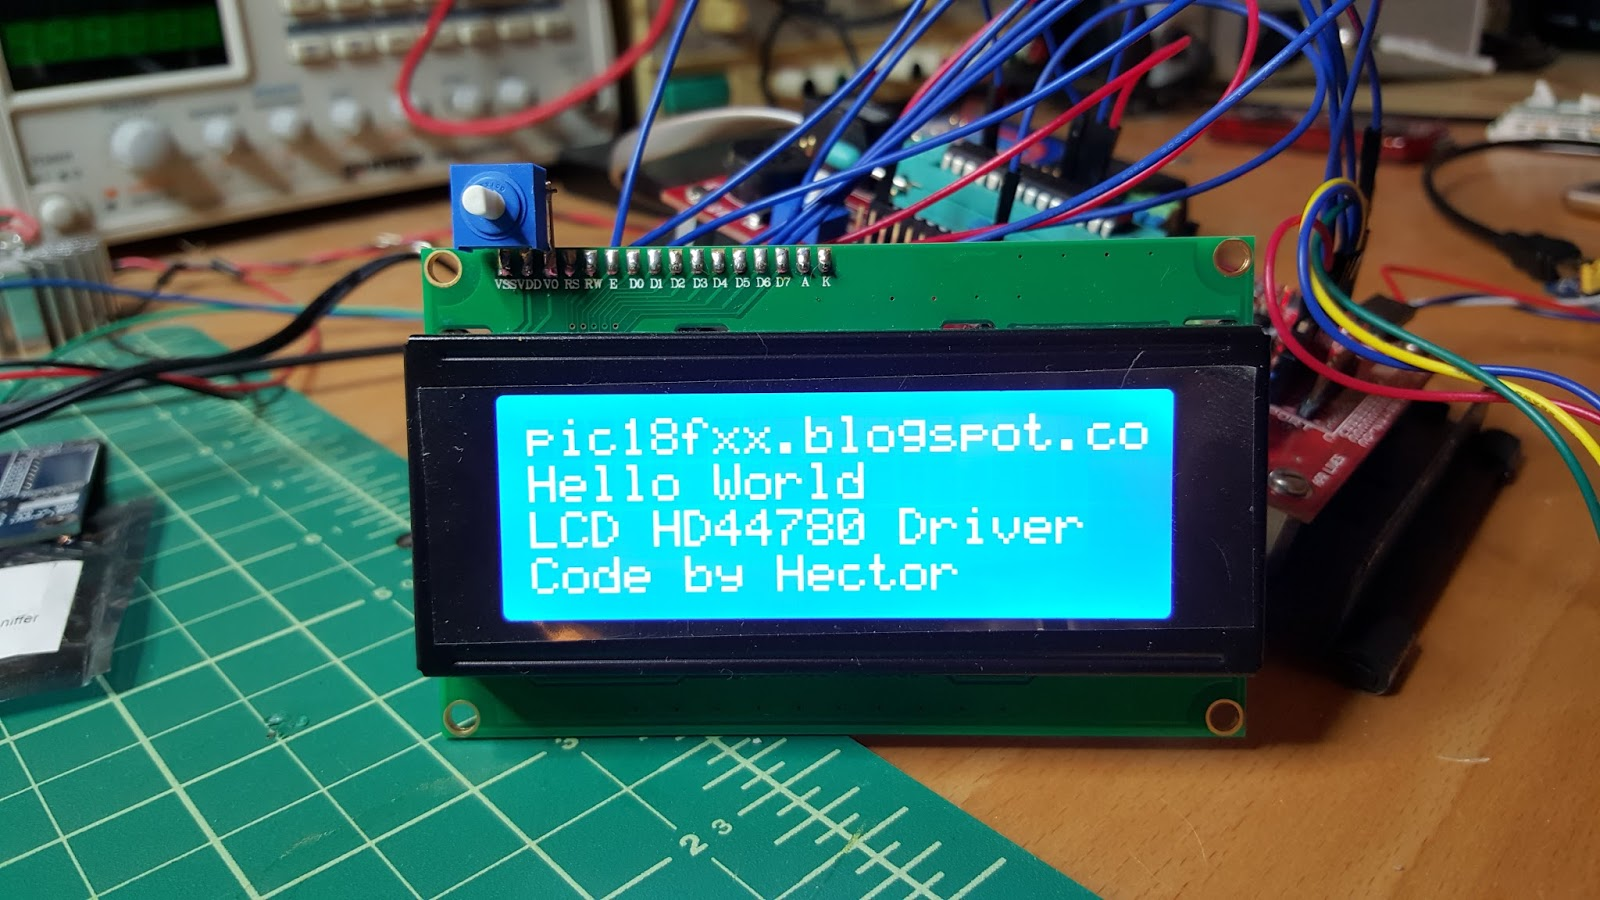 Library for LCD HD44780  ~ Projects with PIC18F microcontrollers